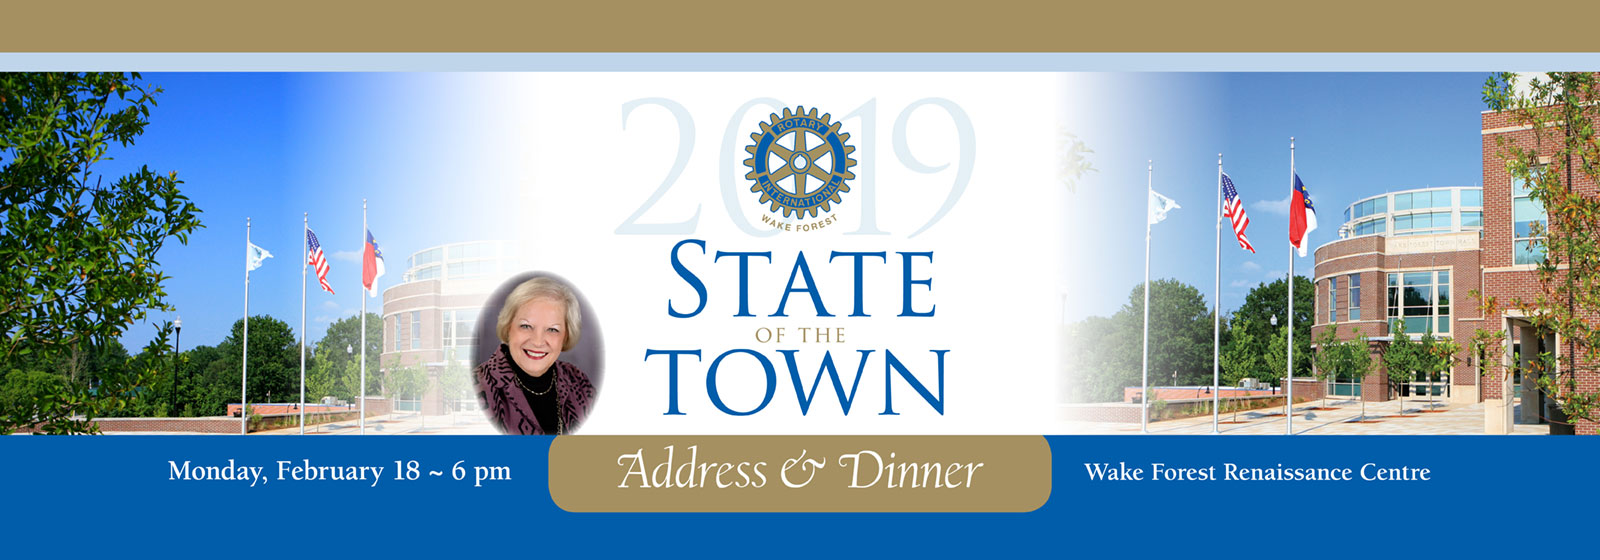 2019 State of the Town Address & Dinner